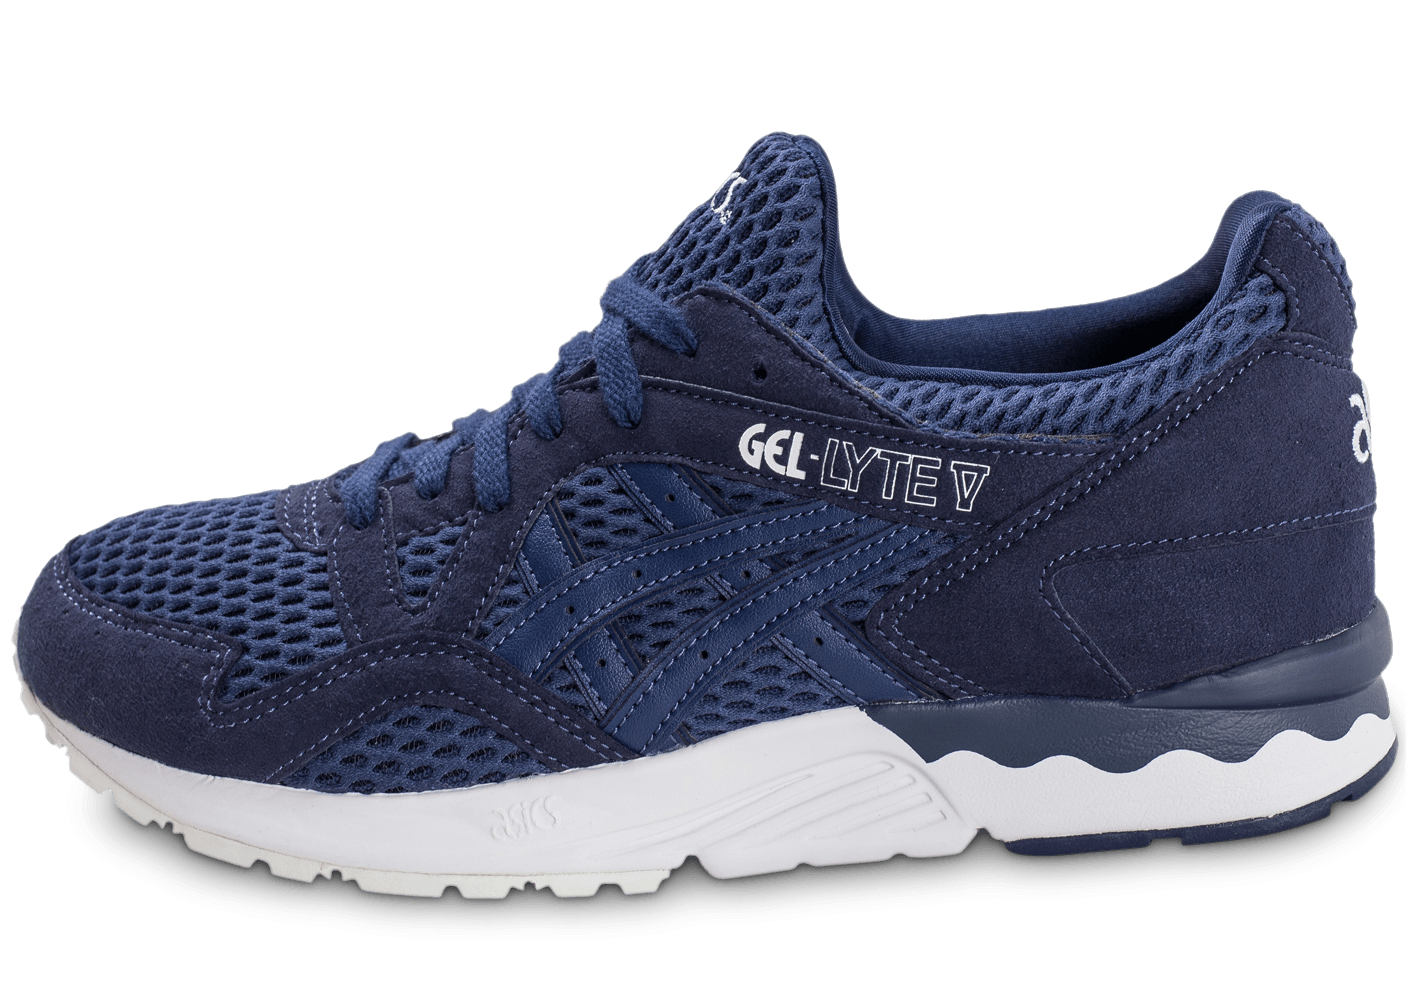 asics gel lyte v bleu indigo chaussures homme chausport. Black Bedroom Furniture Sets. Home Design Ideas